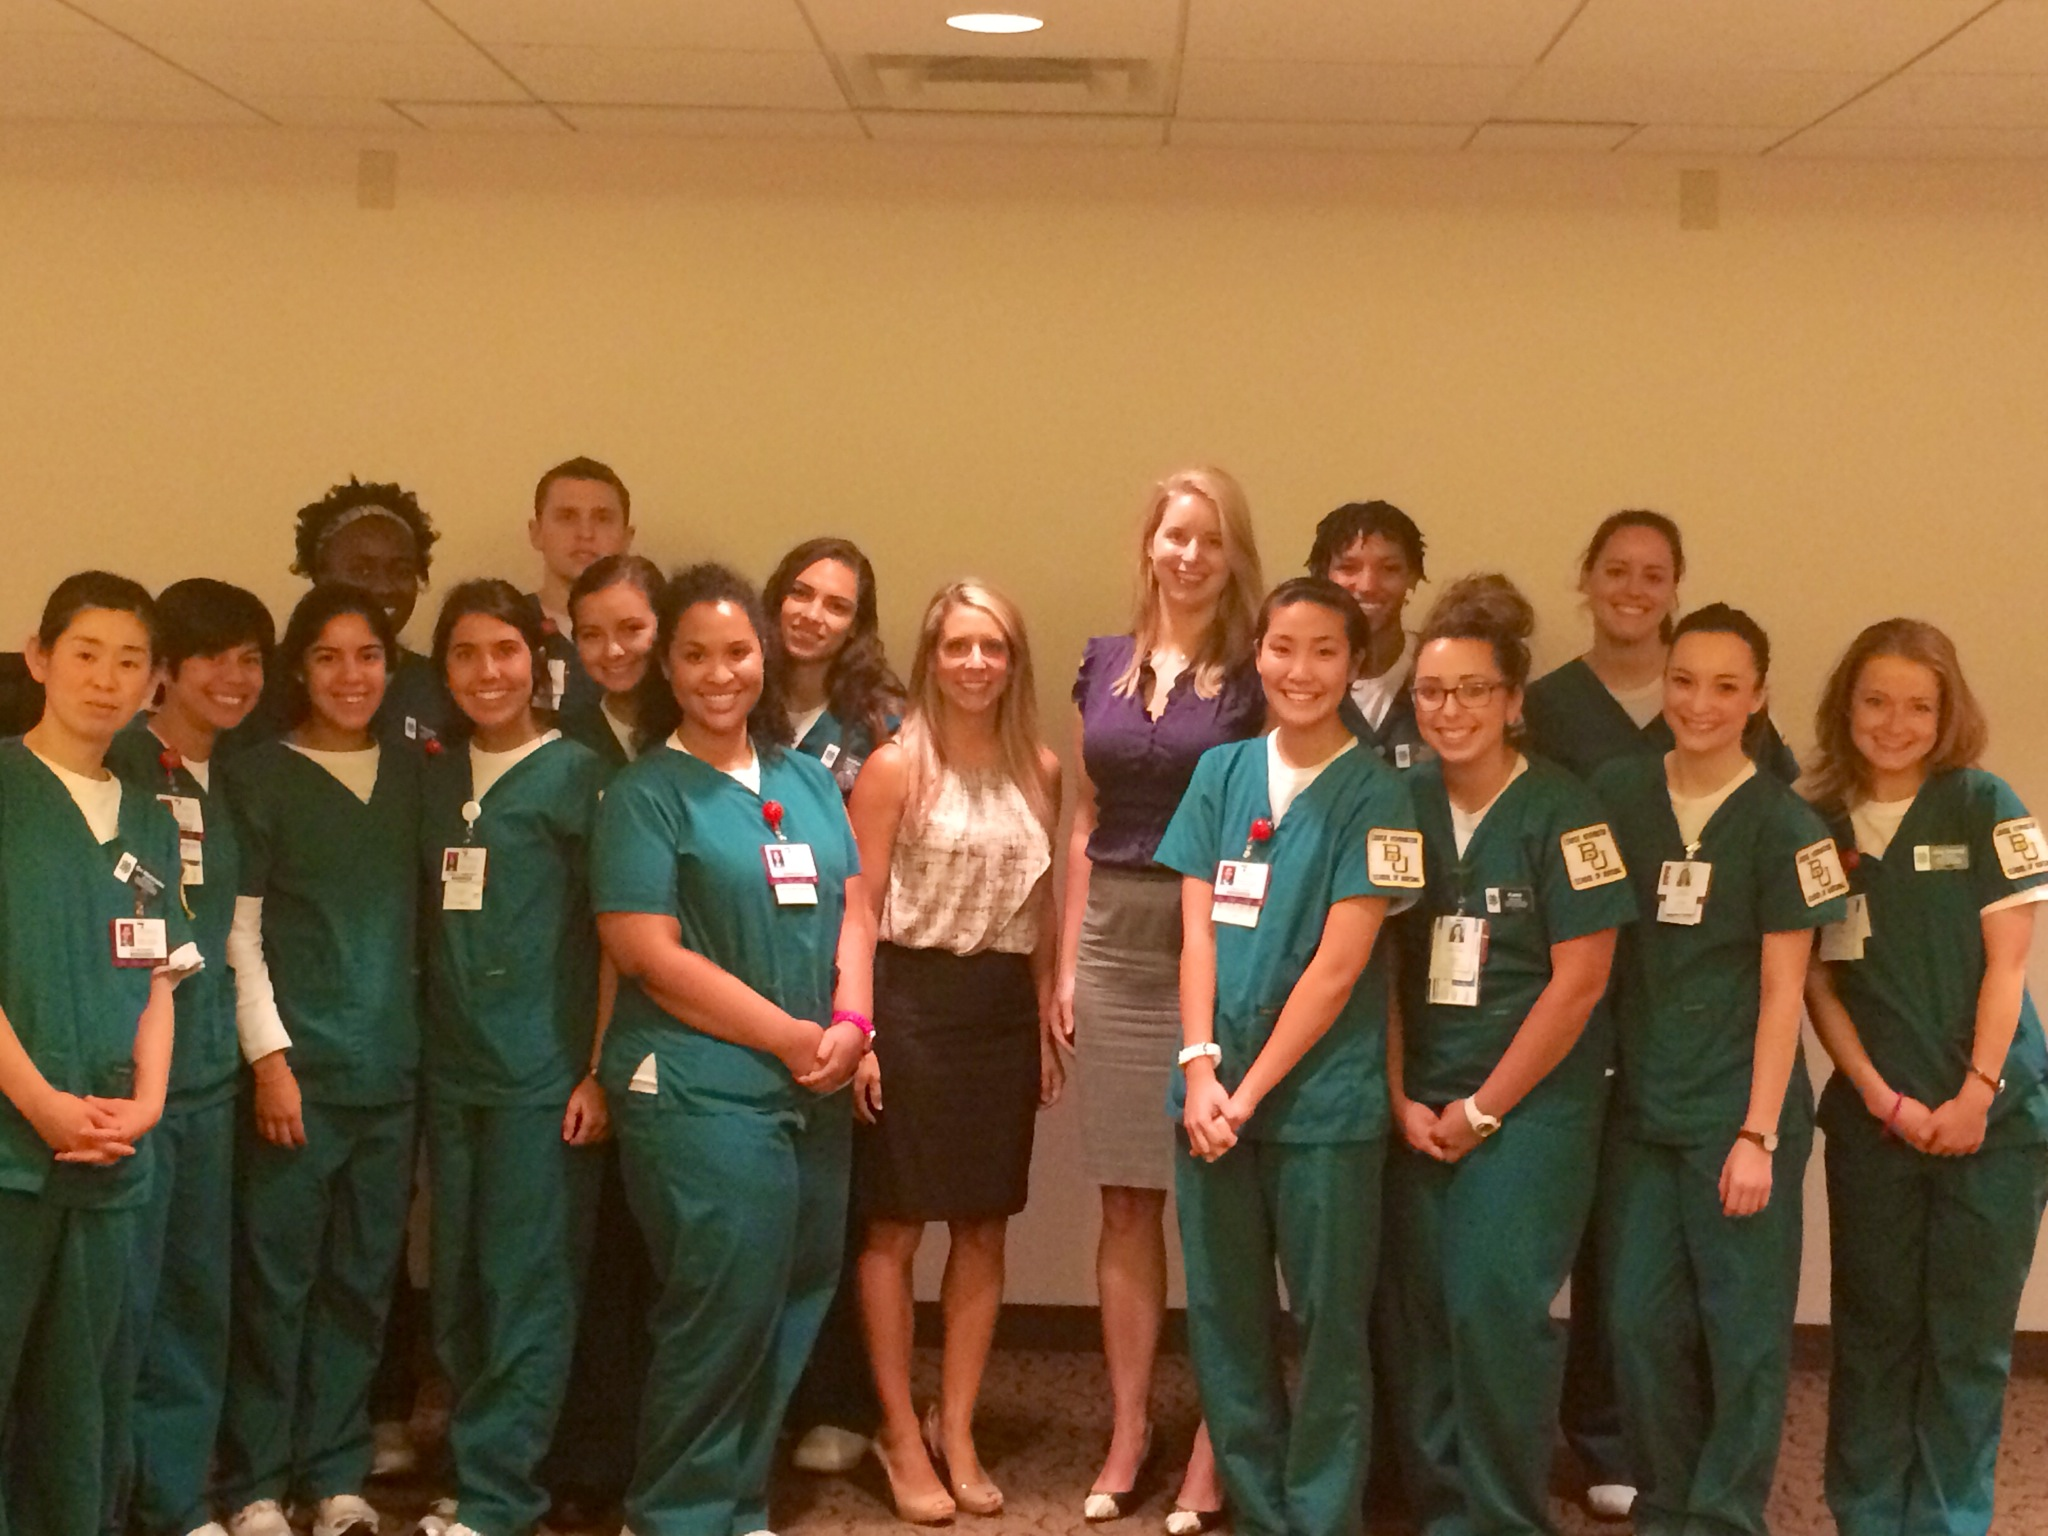 """Jessica Dunne and Alison R. Williams Present """"Legal Pitfalls in the Medical World"""" to Class of Nursing Students – Health"""